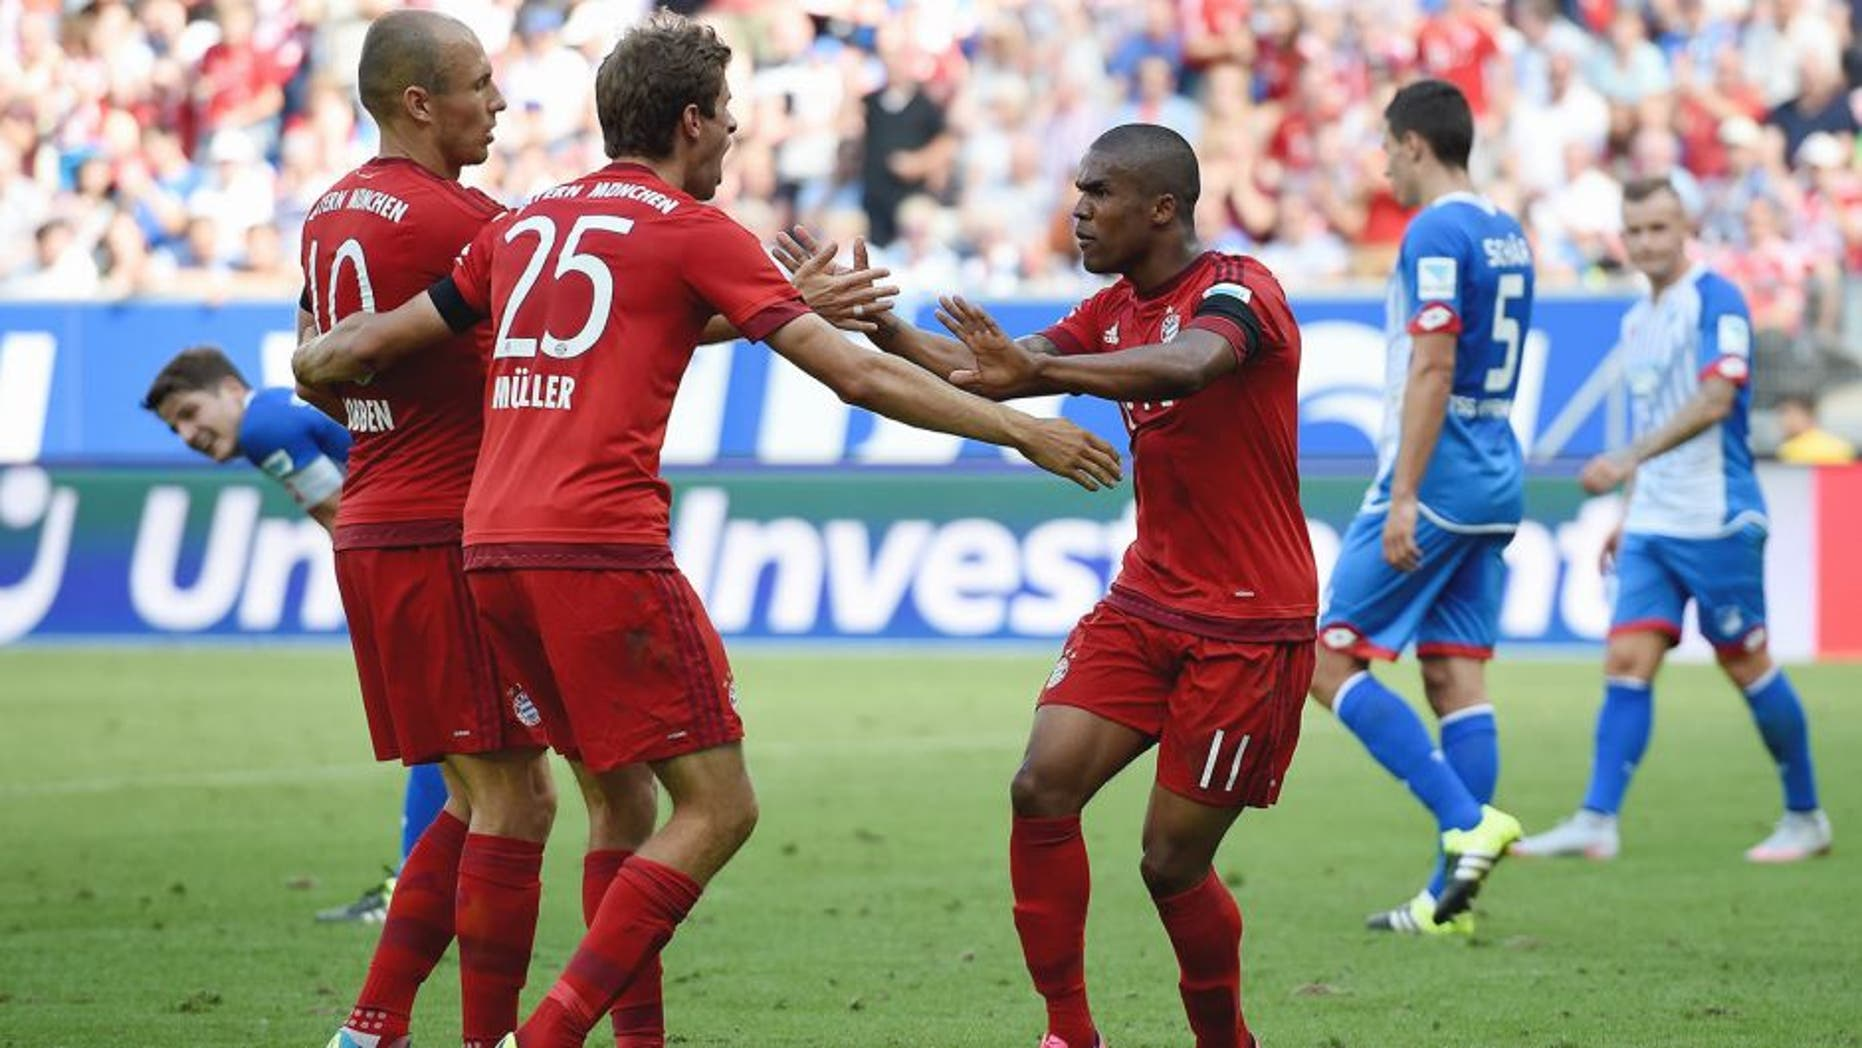 SINSHEIM, GERMANY - AUGUST 22: Thomas Mueller of Muenchen celebrates with his team-mates after scoring his team's first goal during the Bundesliga match between 1899 Hoffenheim and FC Bayern Muenchen at Wirsol Rhein-Neckar-Arena on August 22, 2015 in Sinsheim, Germany. (Photo by Matthias Hangst/Bongarts/Getty Images)